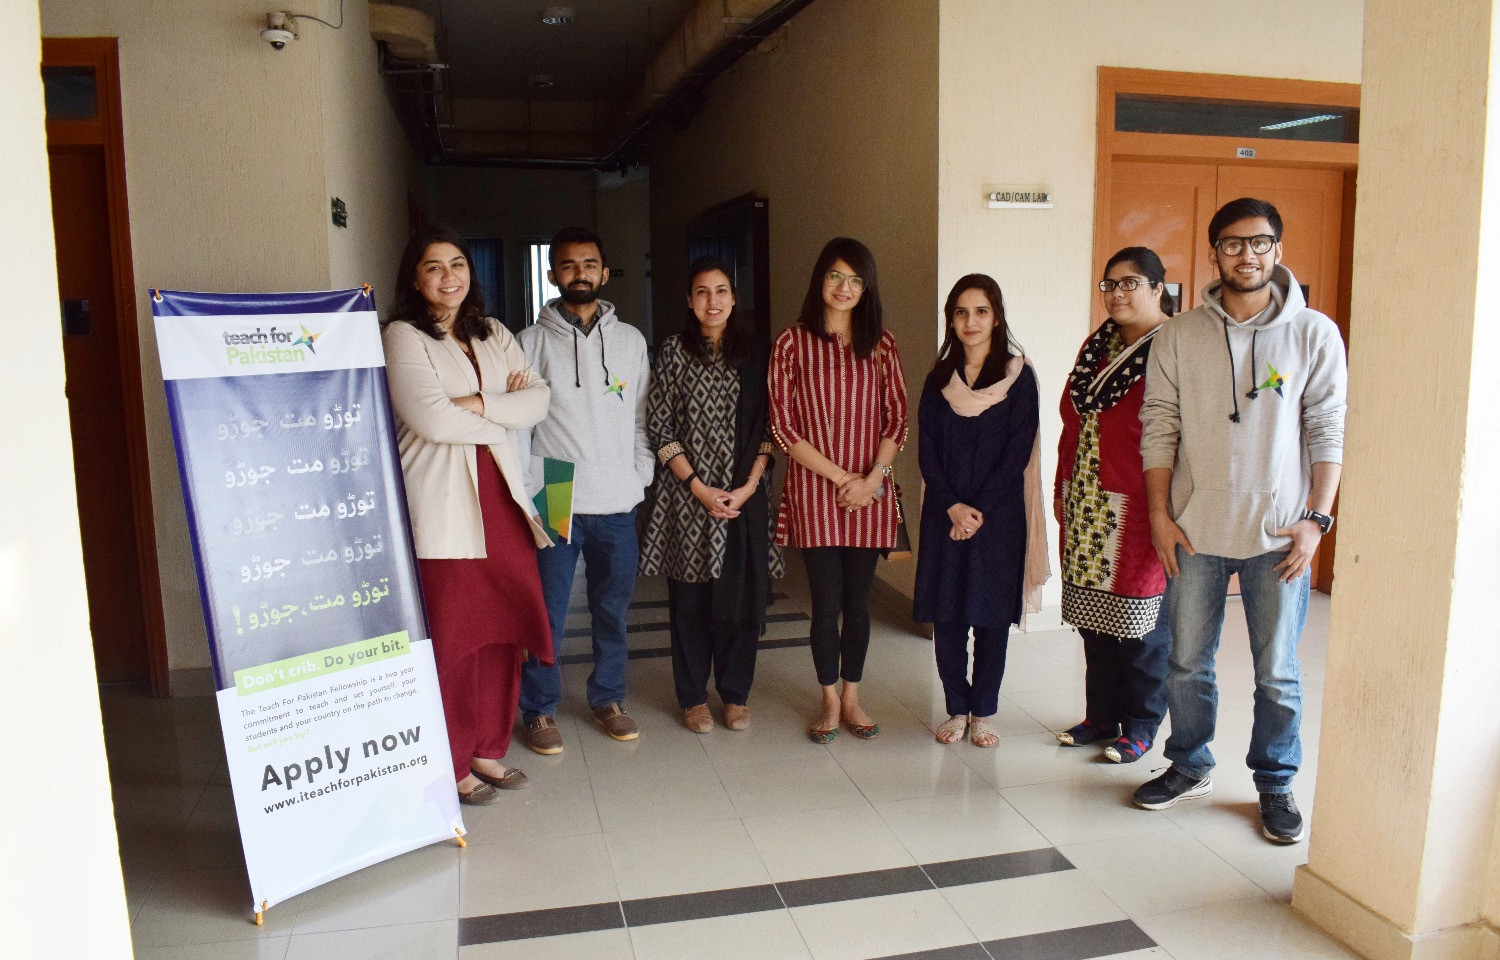 Campus ambassadors and the TFP team